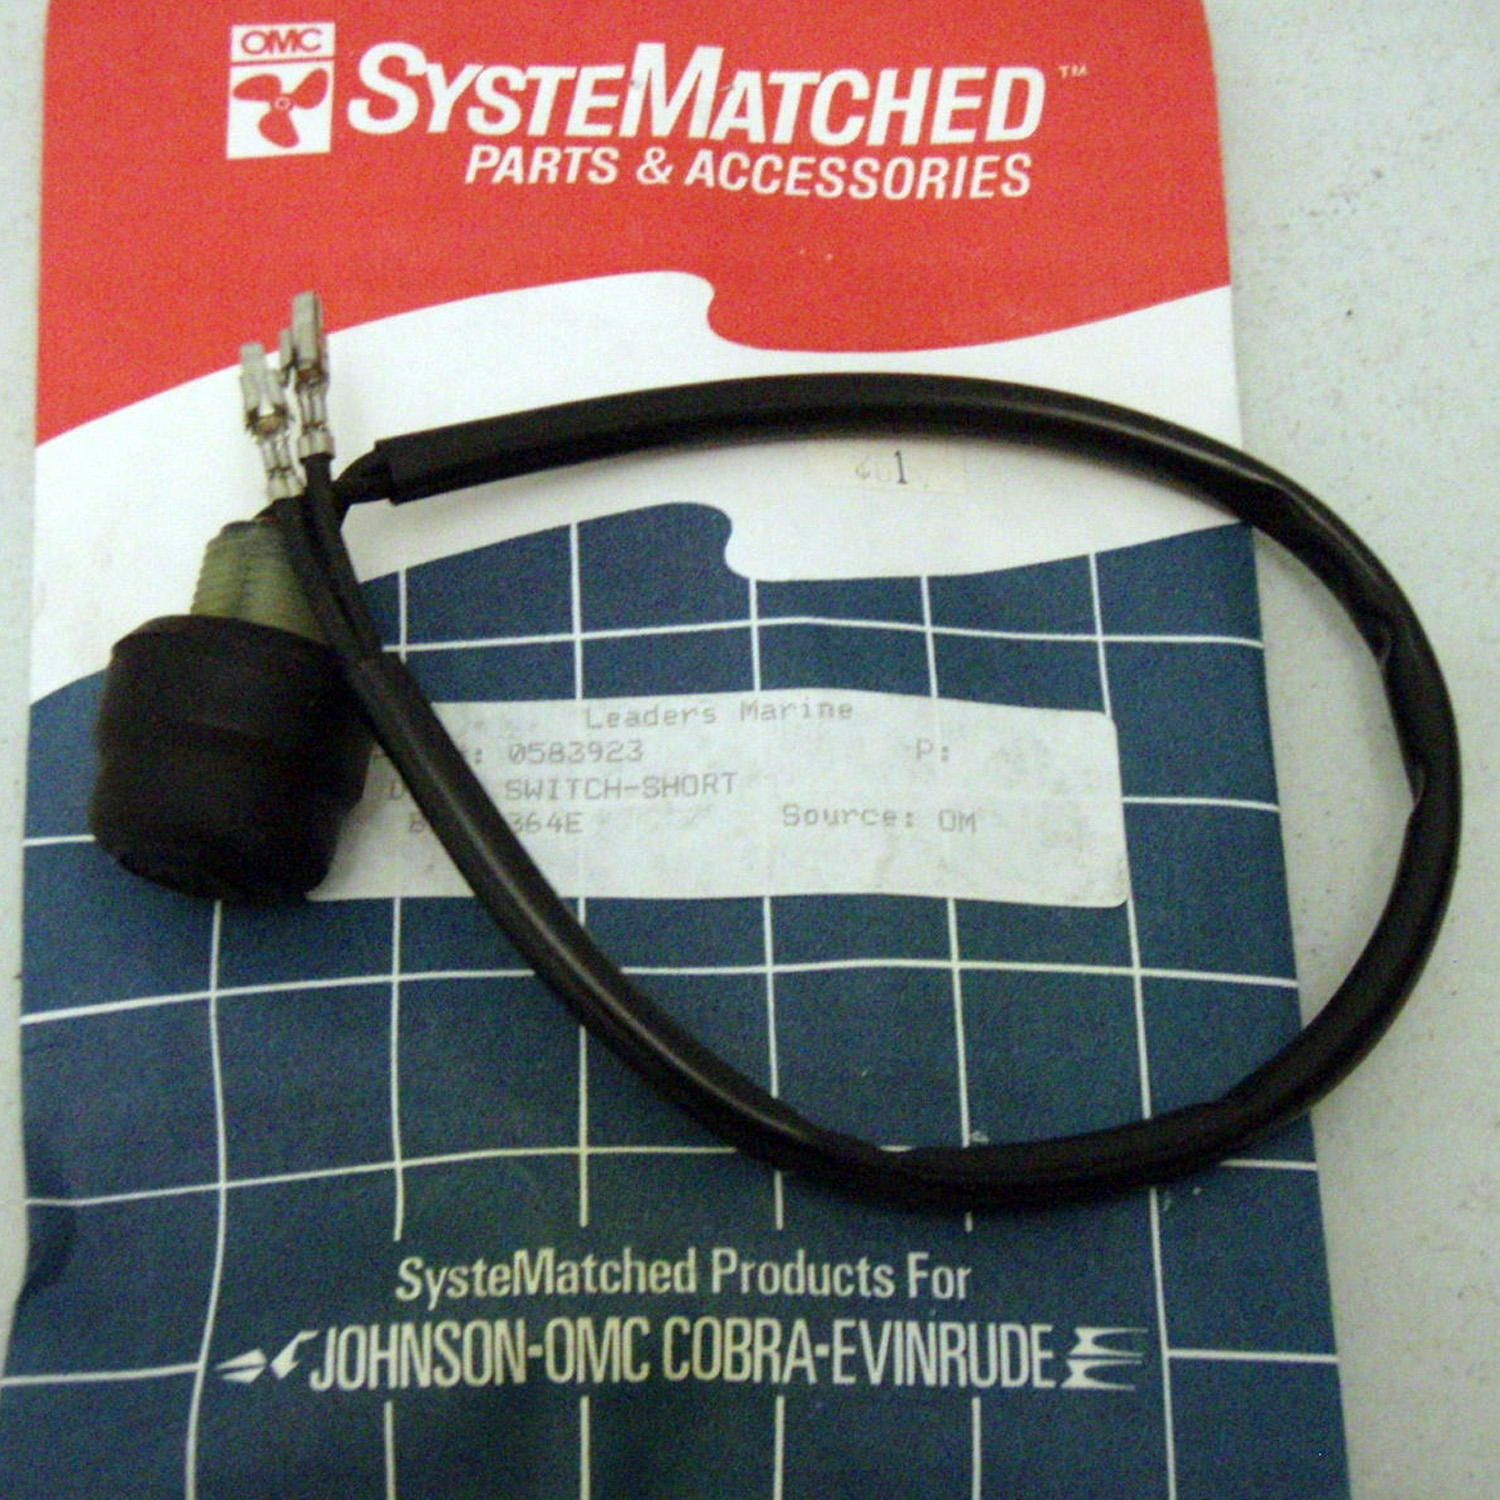 Omc Wiring Harness Boat Parts Ebay Electrical Diagrams Johnson Evinrude Tiller Handle Stop Switch 0583923 Merc